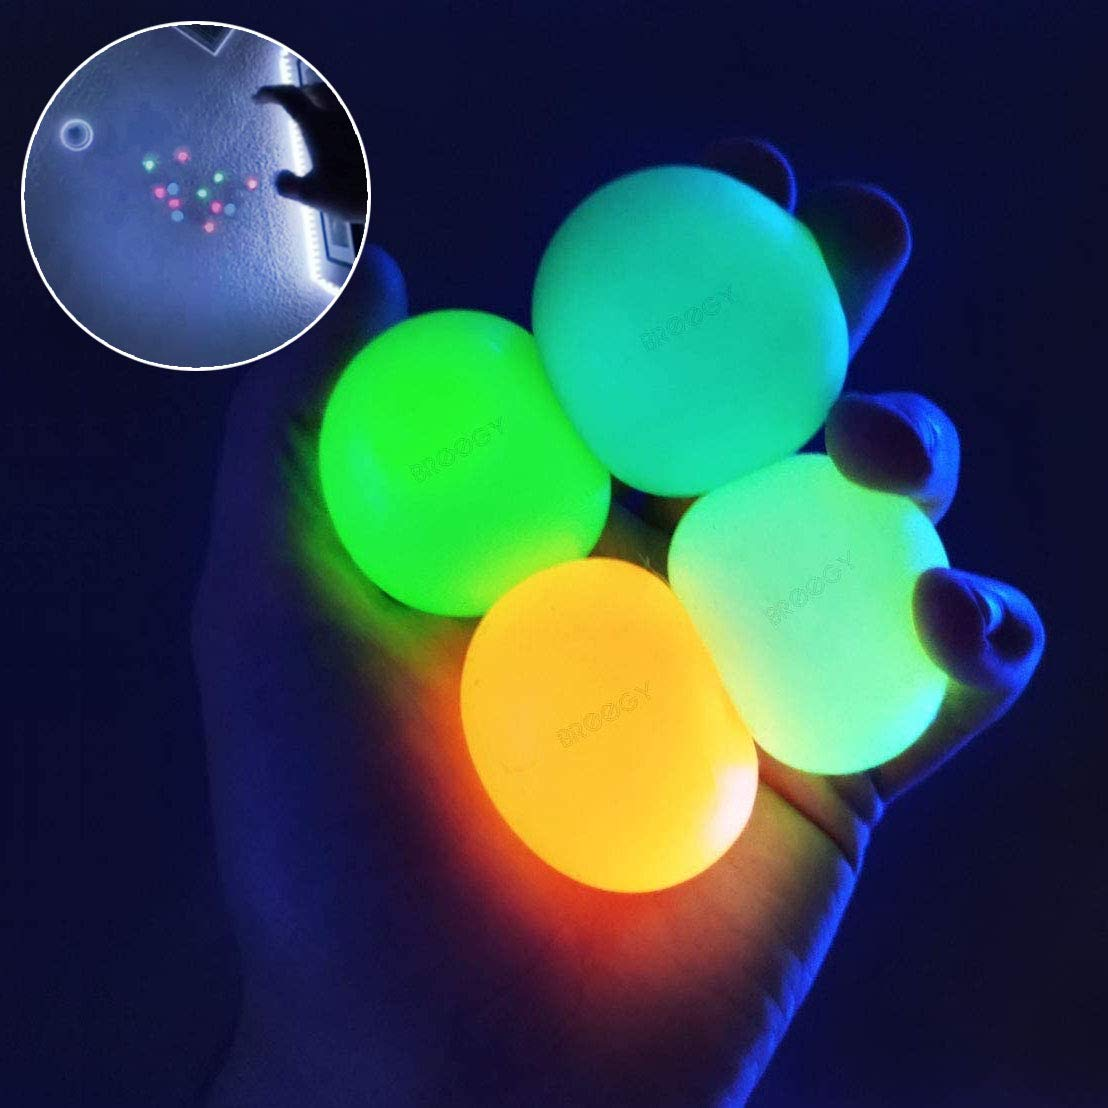 ELAINE KIM BROOGY Sticky Balls for Ceiling Sticky Balls That GETS Stuck ON The ROOF Fidget Balls Sticky Balls Glow That Stick to The Ceiling Sticky Balls Glow in The Dark Sticky Stress Balls (4PCS)